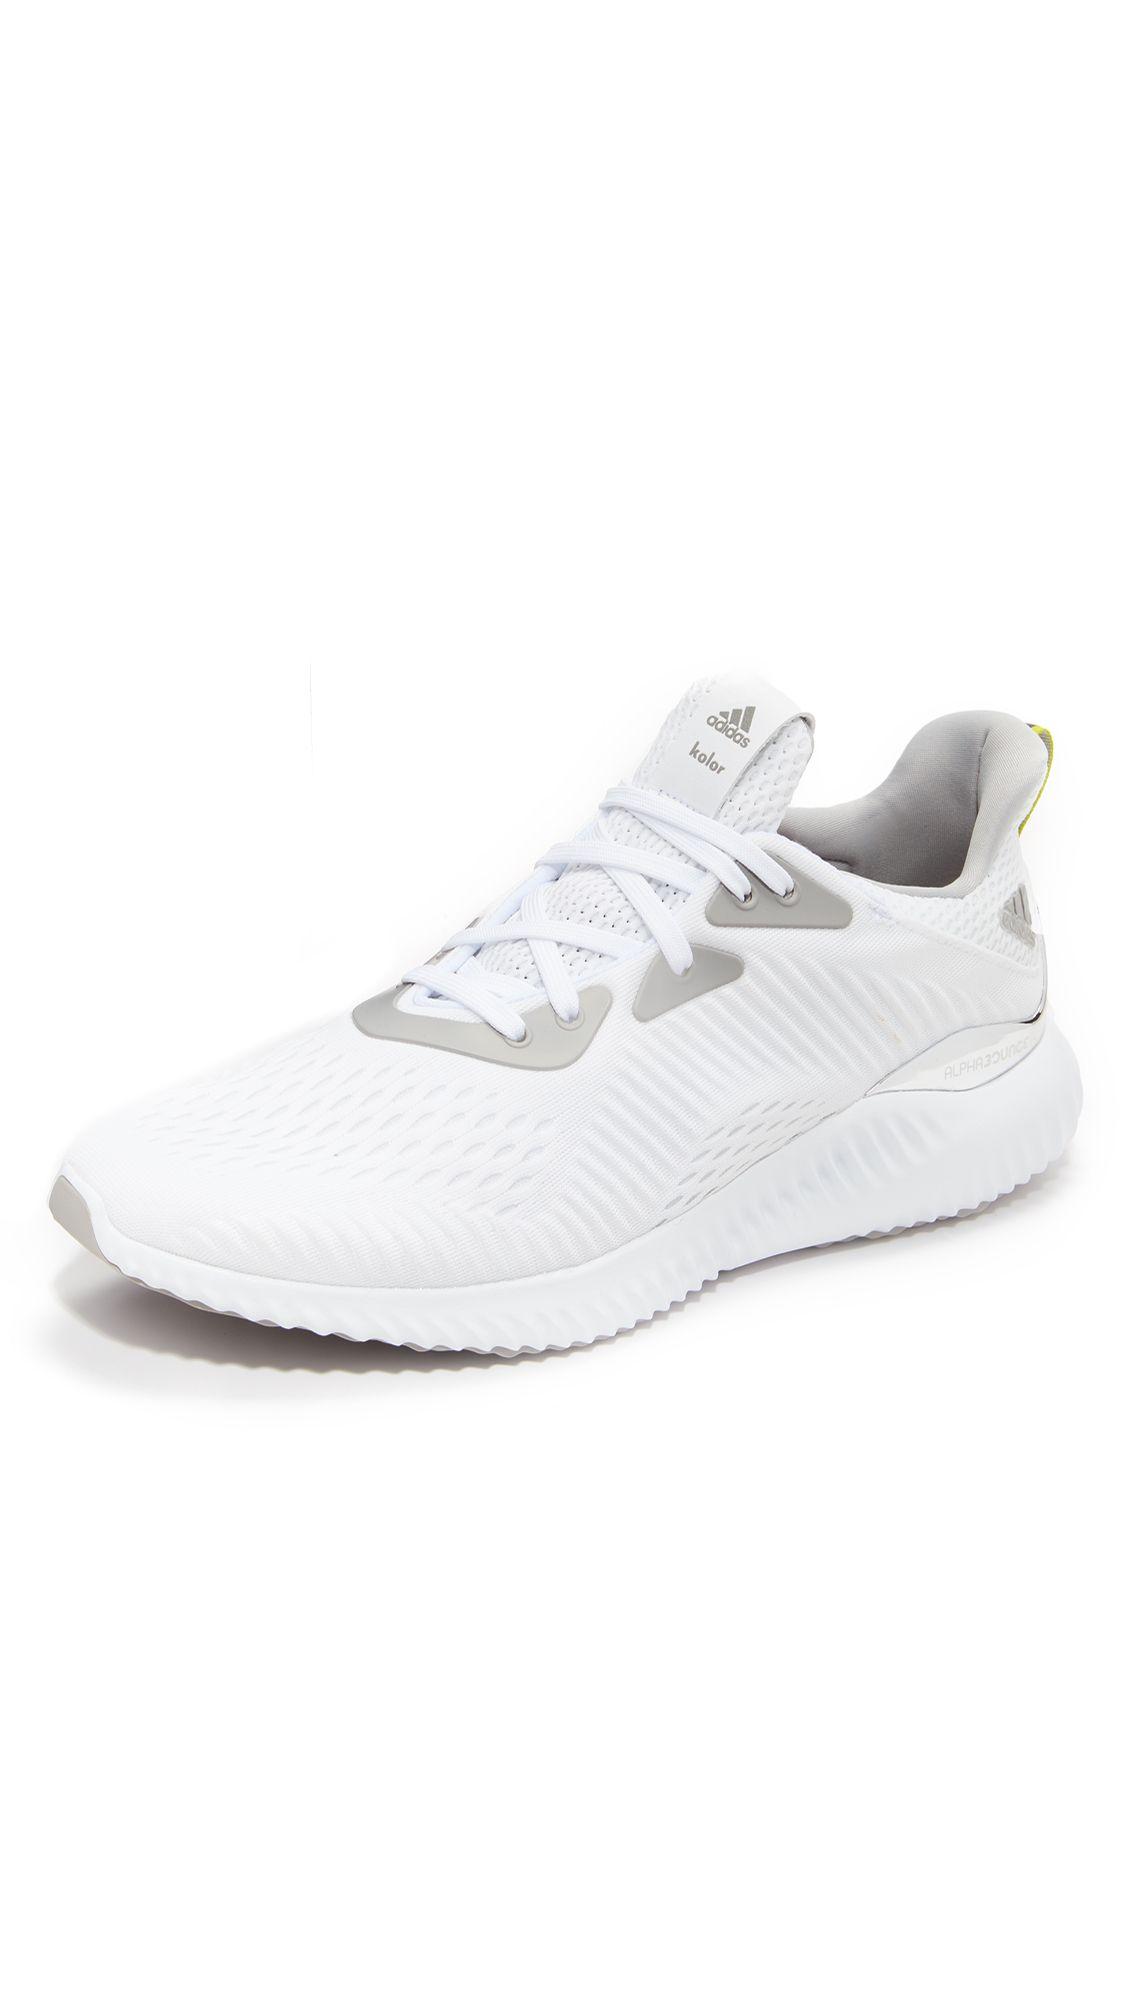 15a526479 ADIDAS BY KOLOR ALPHABOUNCE 1 KOLOR SNEAKERS.  adidasbykolor  shoes